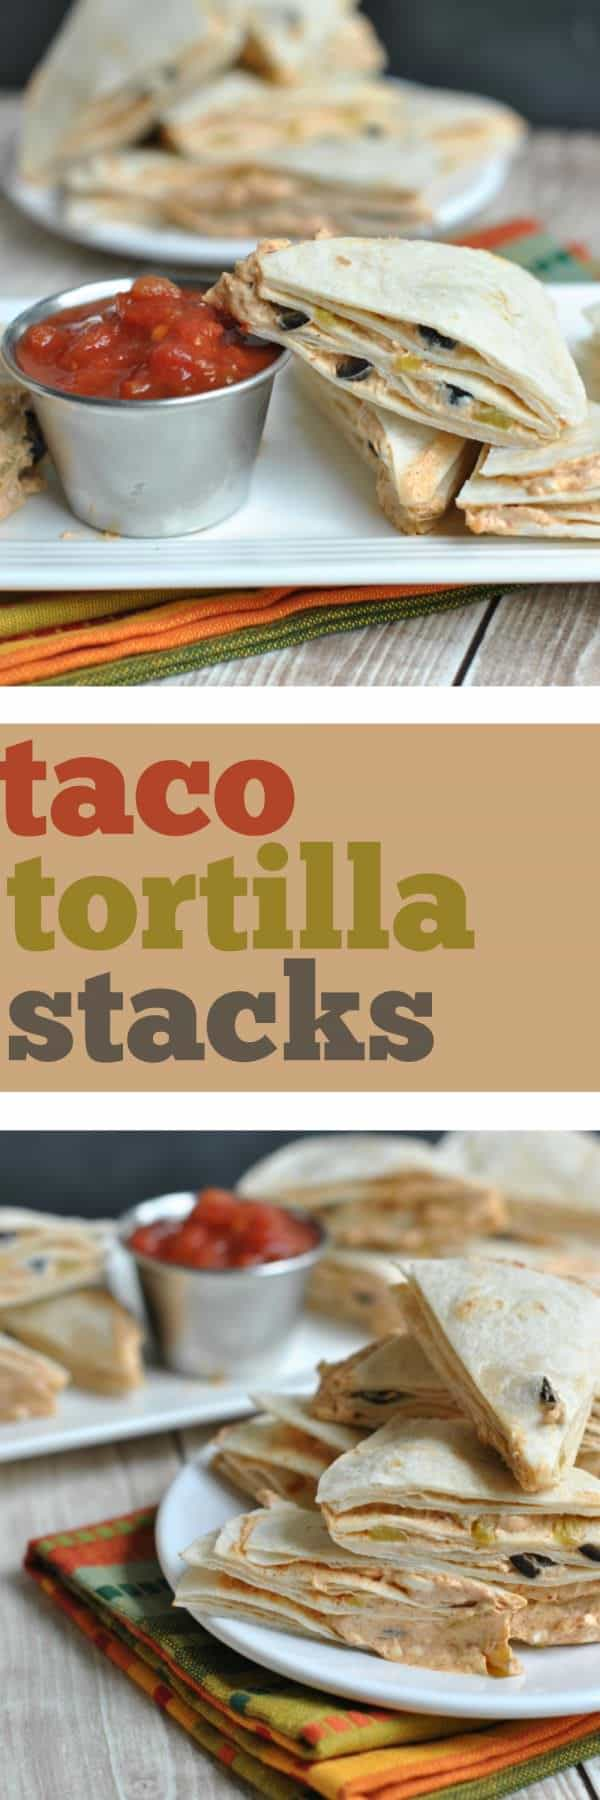 These Taco Tortilla Stacks have been made in our family for years! They are so easy to assemble ahead of time, and serve as a quick snack for a crowd. We enjoy ours served with salsa!